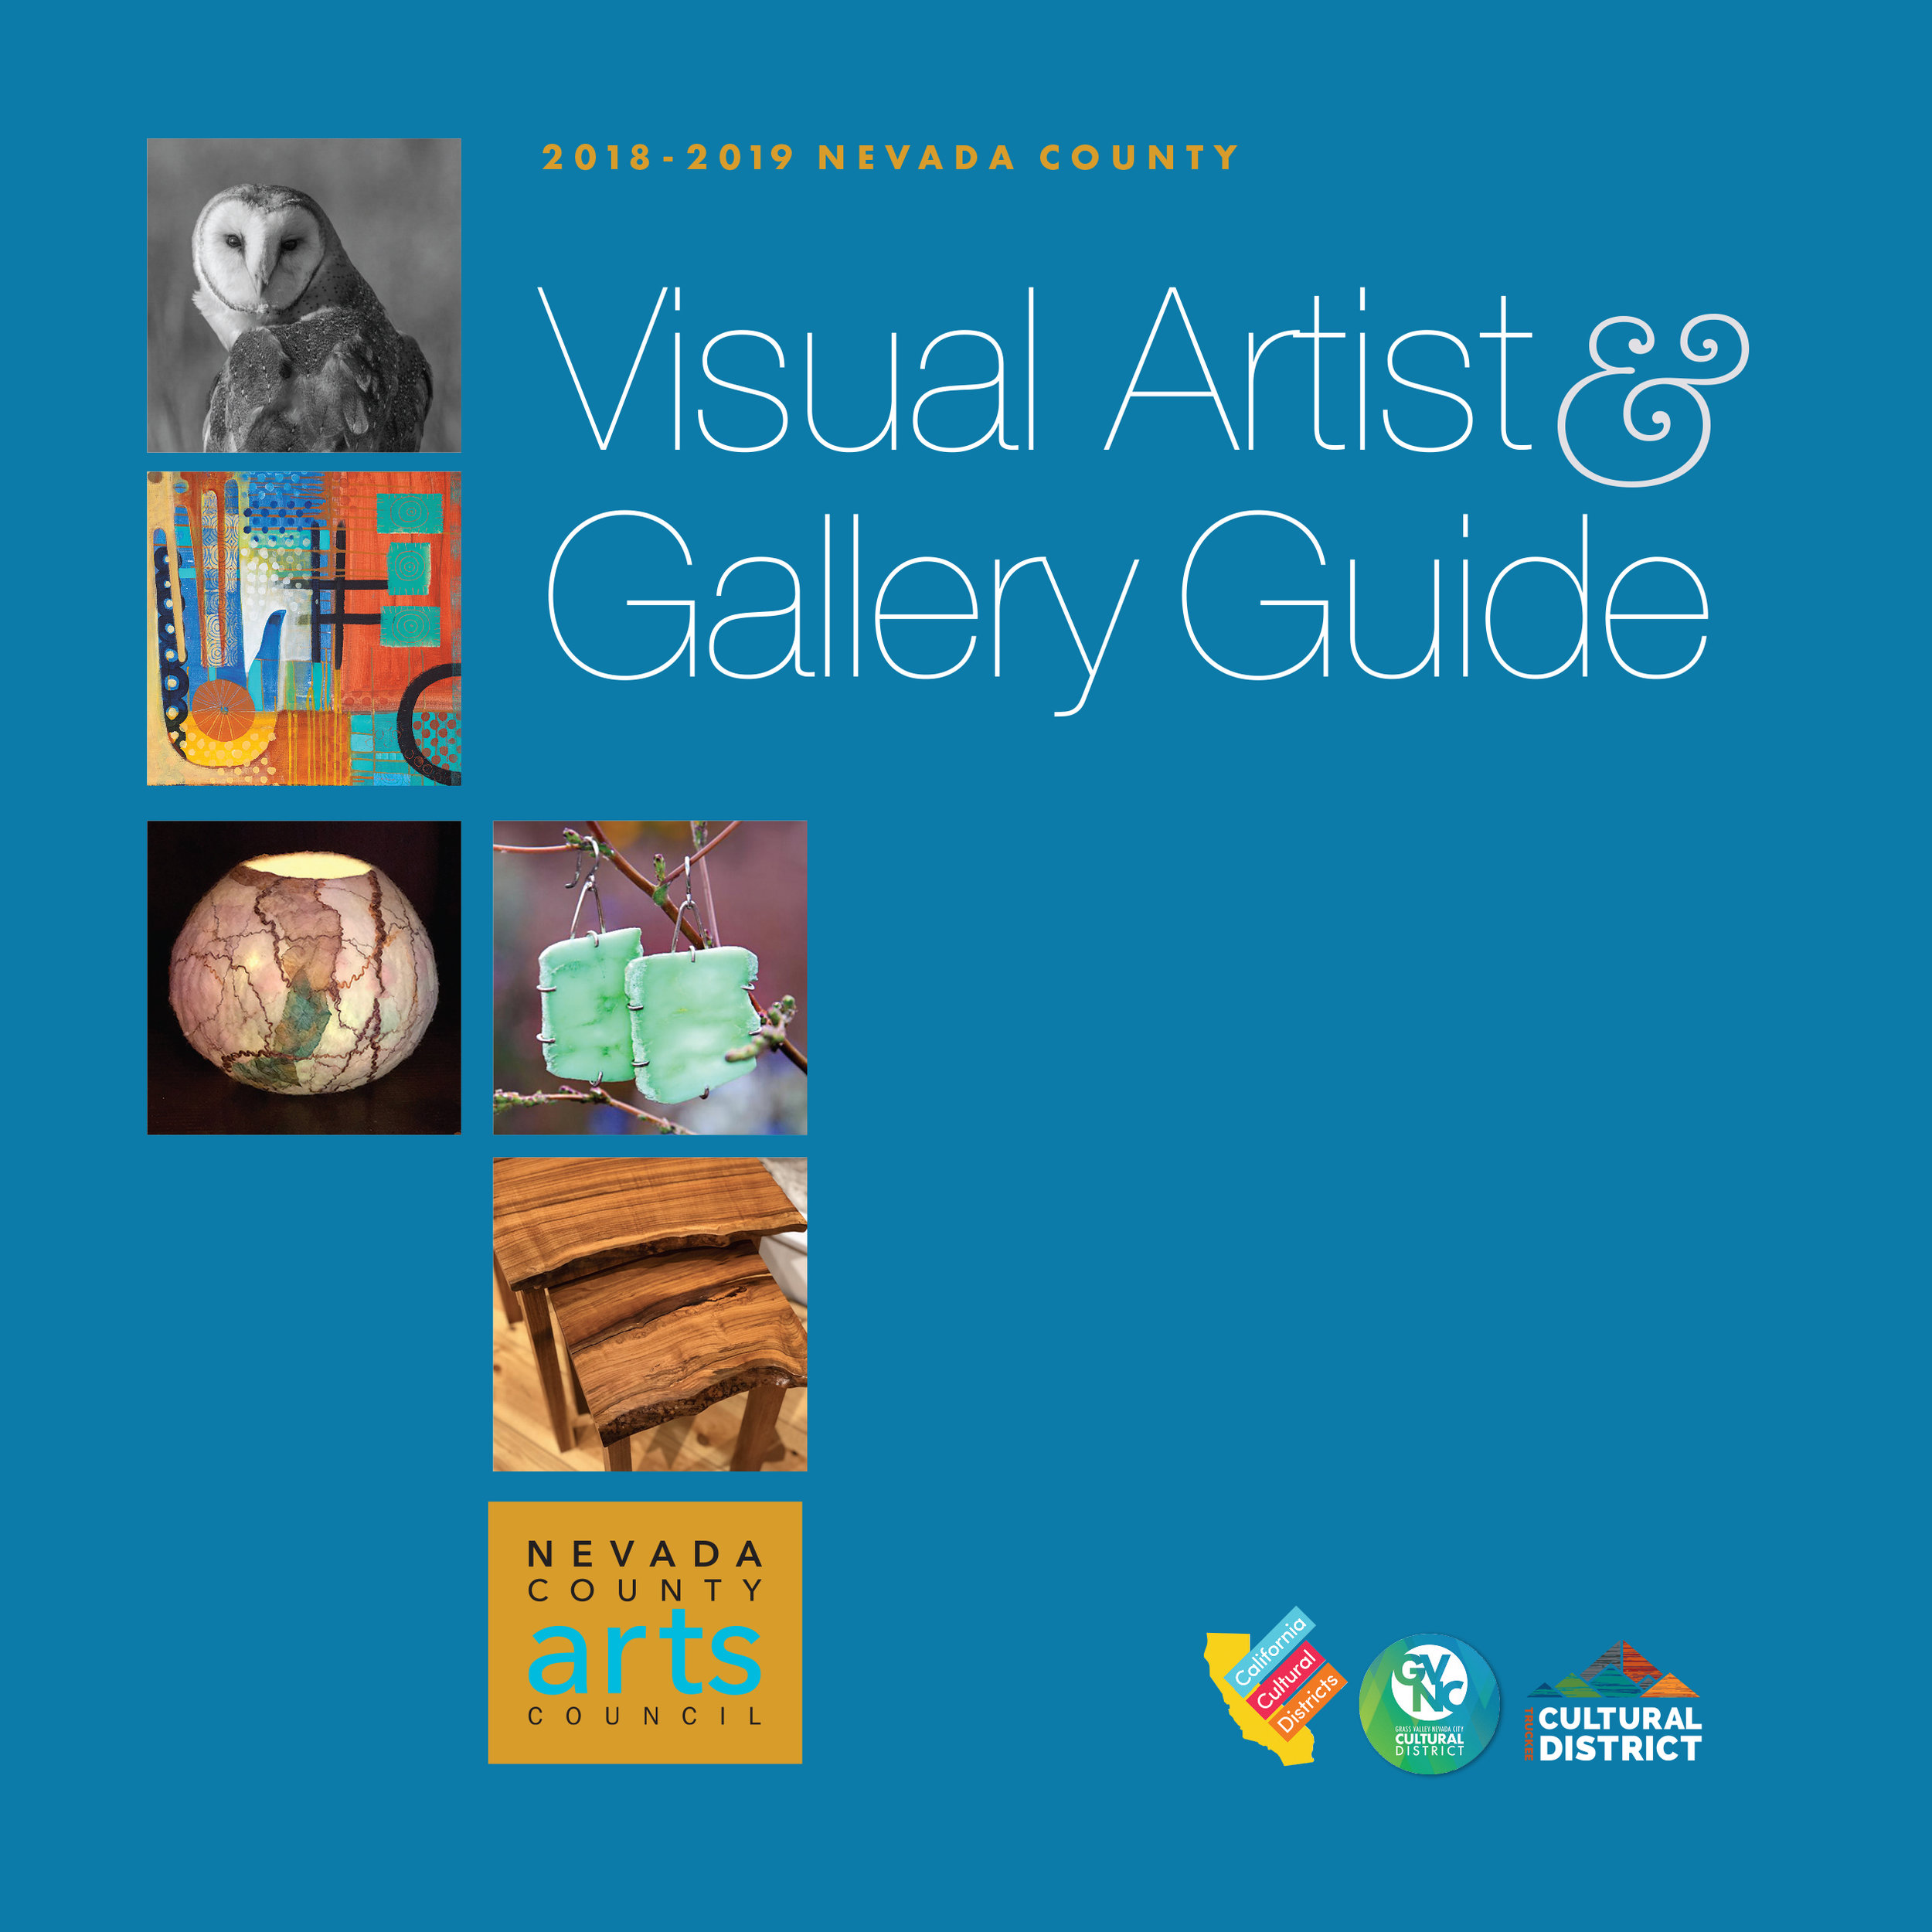 VIEW THE ONLINE VISUAL ARTIST & GALLERY GUIDE -